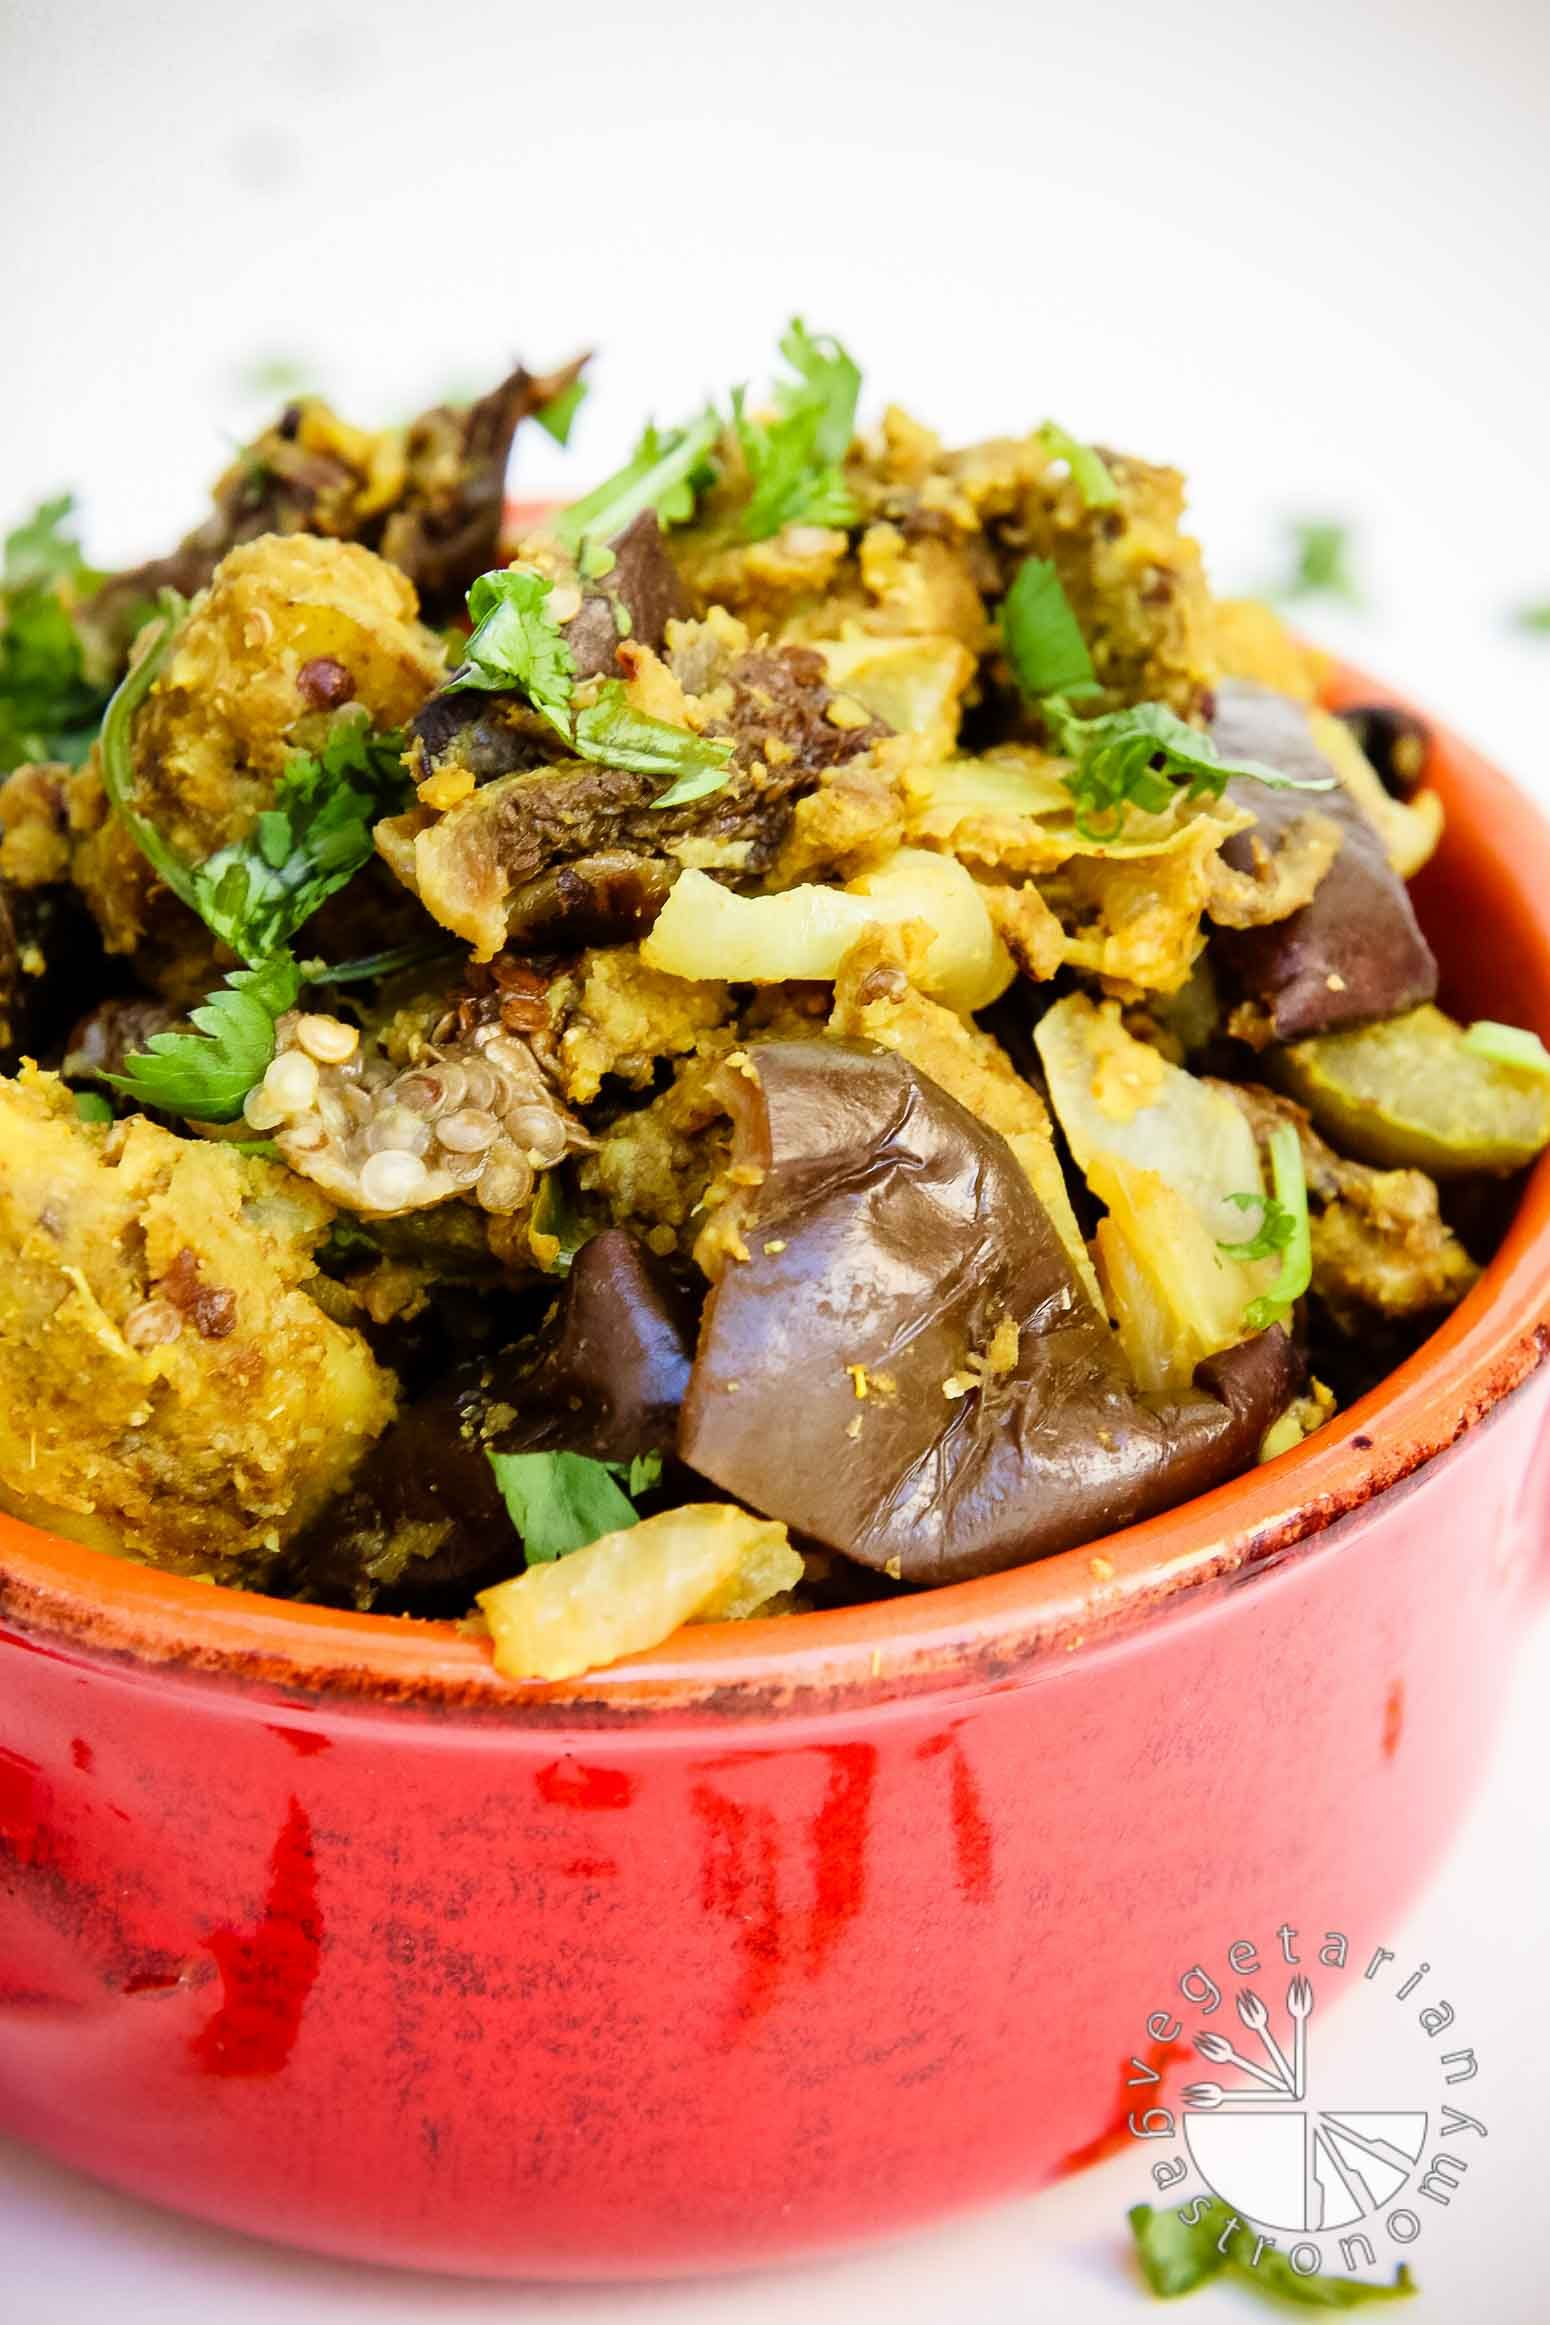 Indian Spice Stuffed Eggplants & Potatoes (vegan, gluten-free) | A traditional popular Indian vegetable dish made healthy and easy! Try your hand at this version of Indian Spice Stuffed Eggplants & Potatoes | Vegetarian Gastronomy